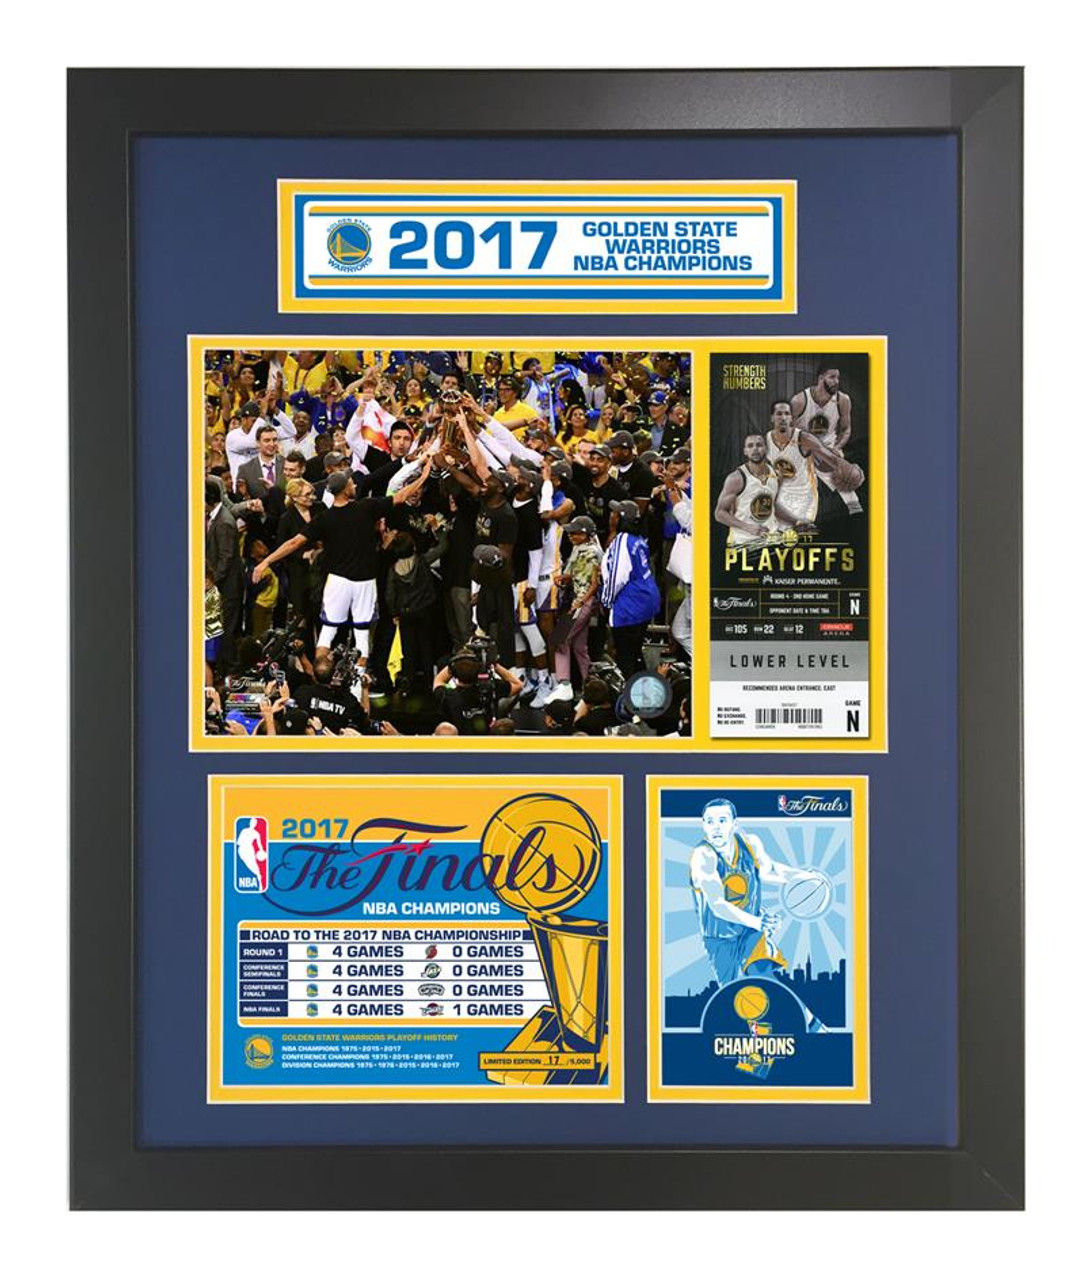 2e16a375 Golden State Warriors 2017 NBA Champions Framed Piece Signed by Steph Curry